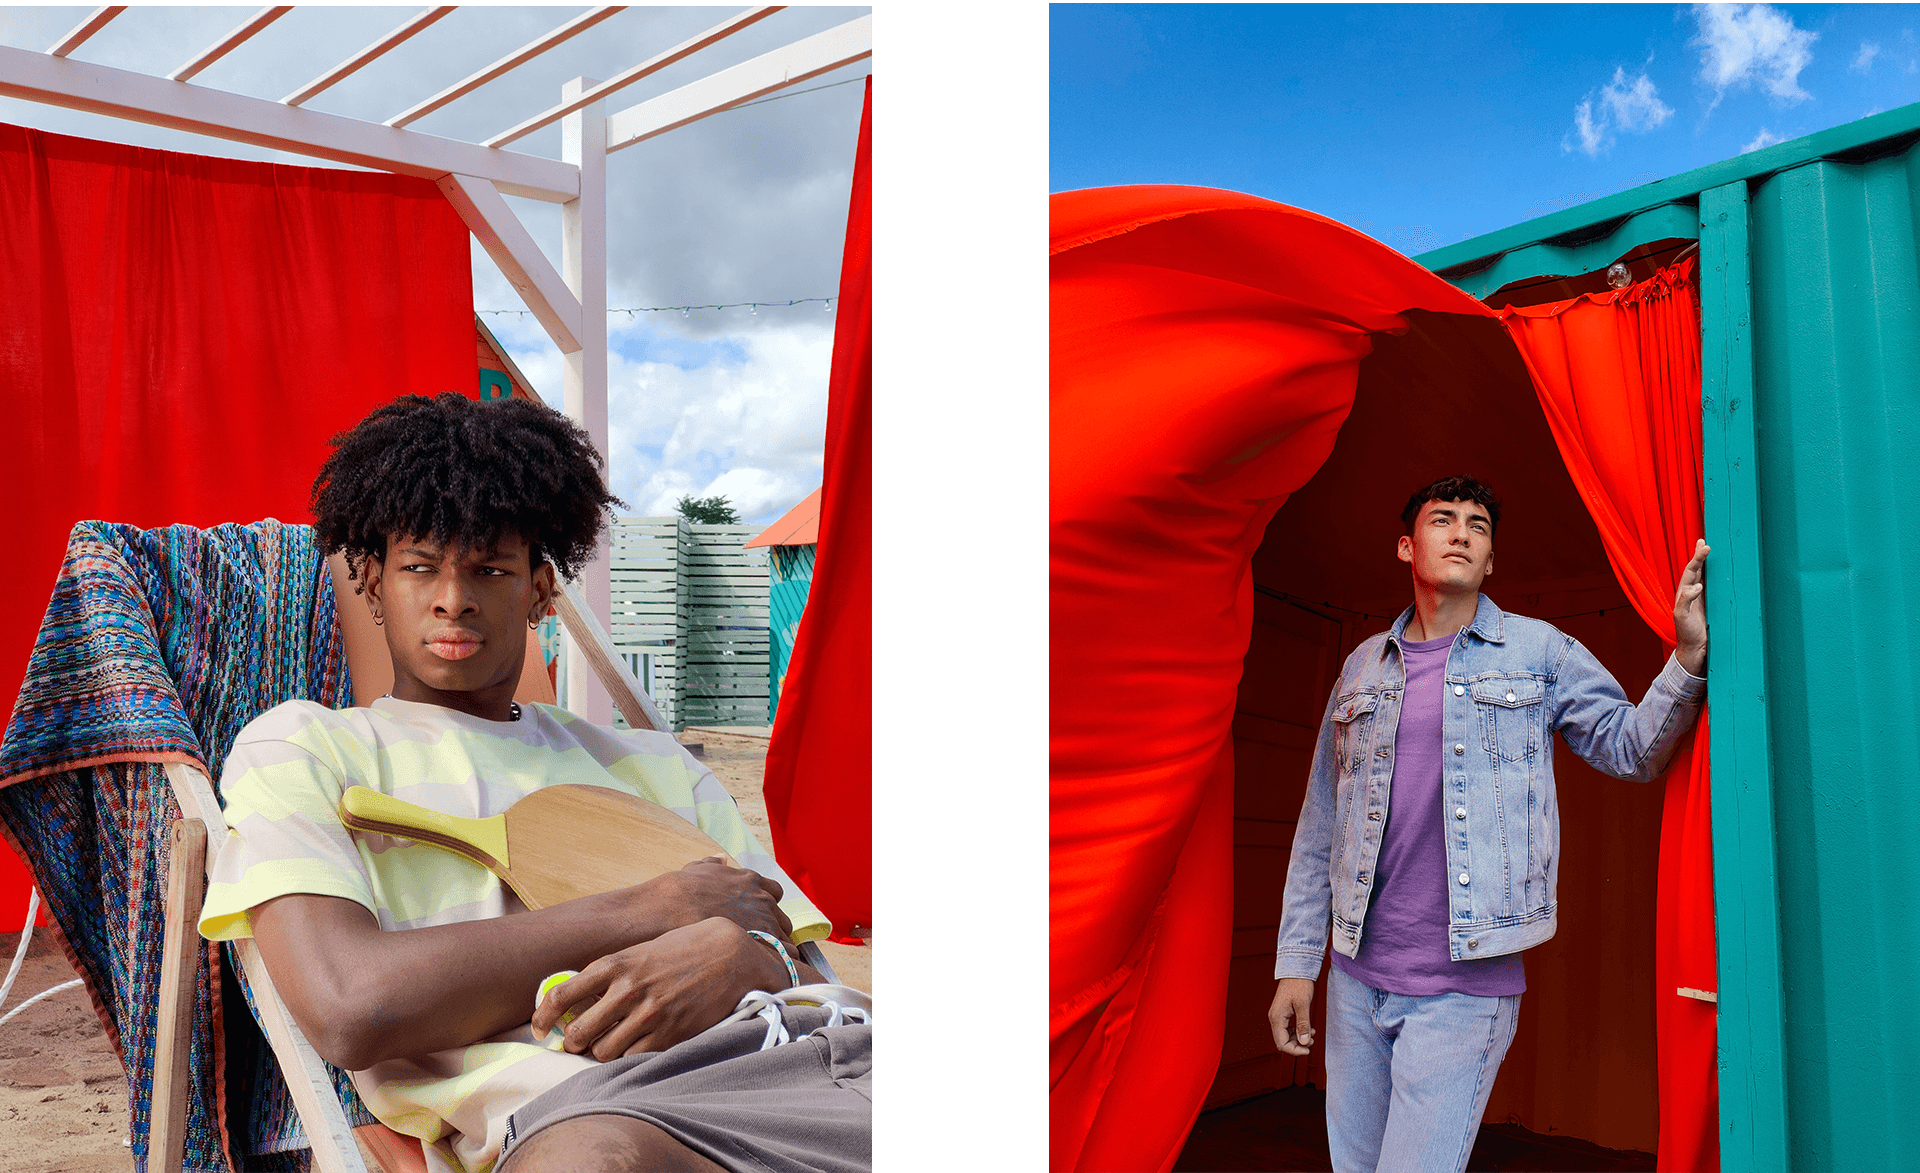 black male model sitting on a beach chair picture taken by oppo reno4 for hungry and foolish campaign by simon duhamel